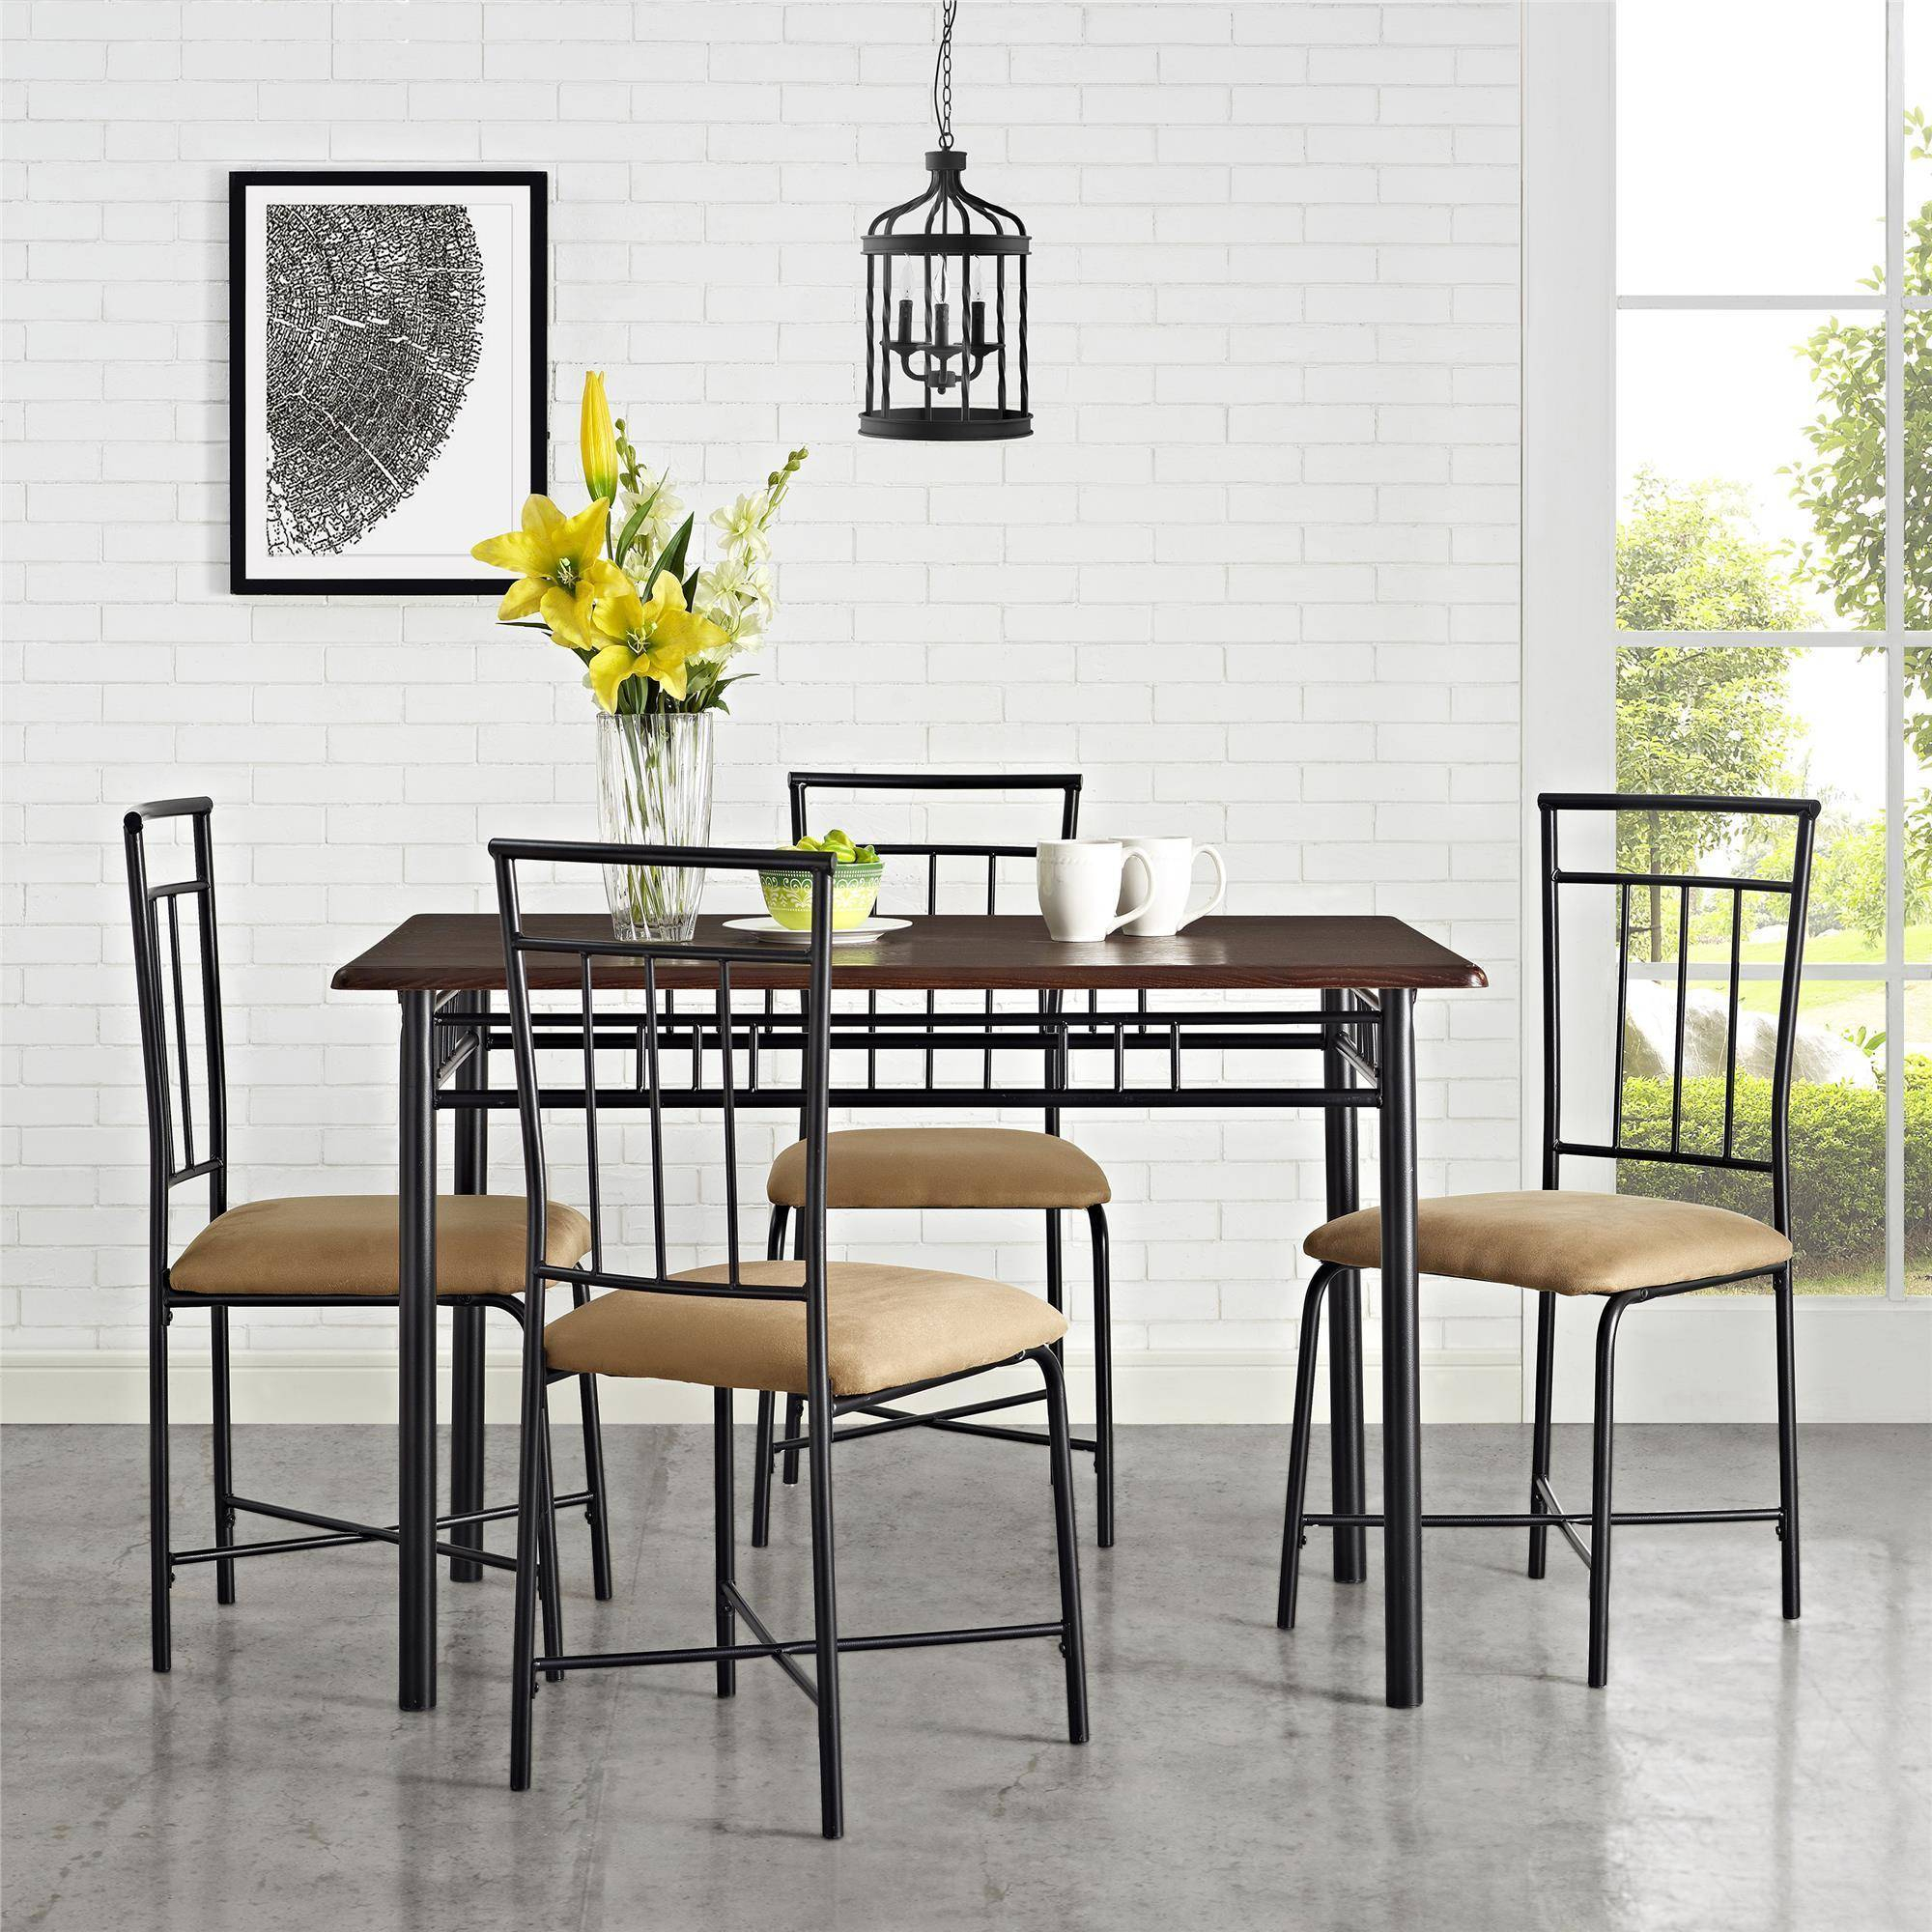 Metropolitan 3 Piece Dining Set, Multiple Finishes Pertaining To Most Recent Rossiter 3 Piece Dining Sets (Image 9 of 20)